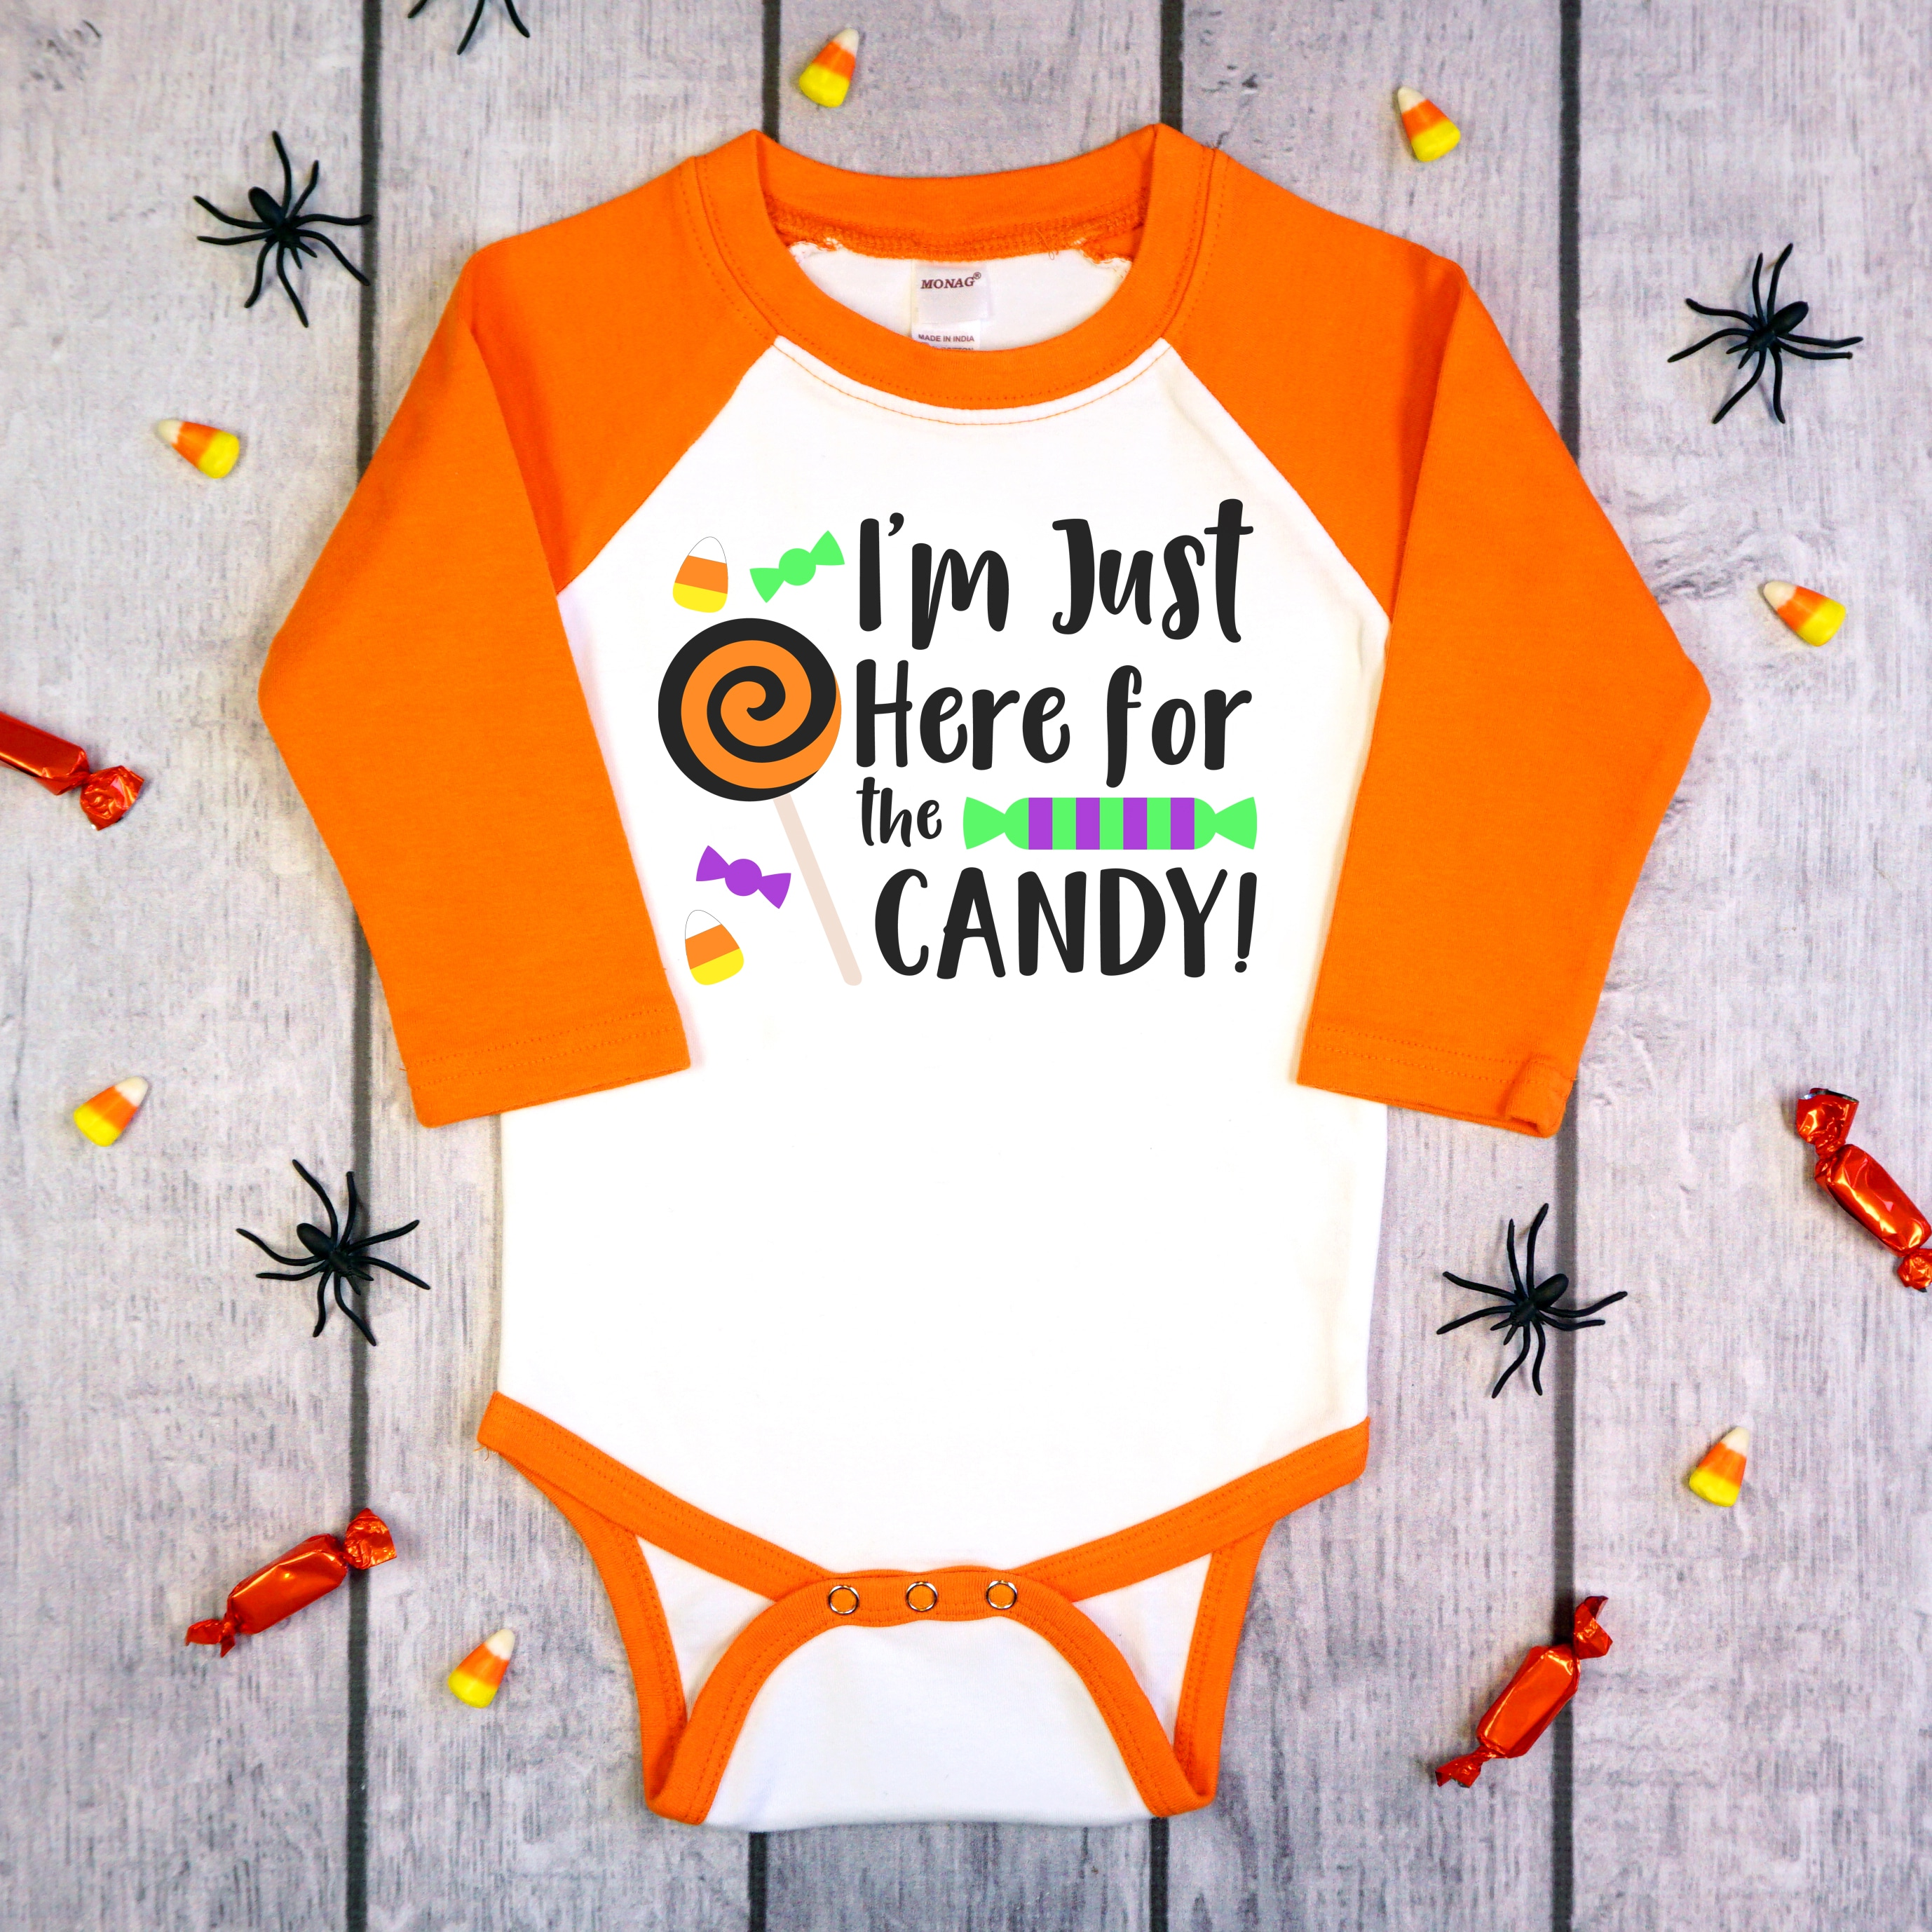 FREE Halloween SVG: I'm Just Here for the Candy! - Happiness